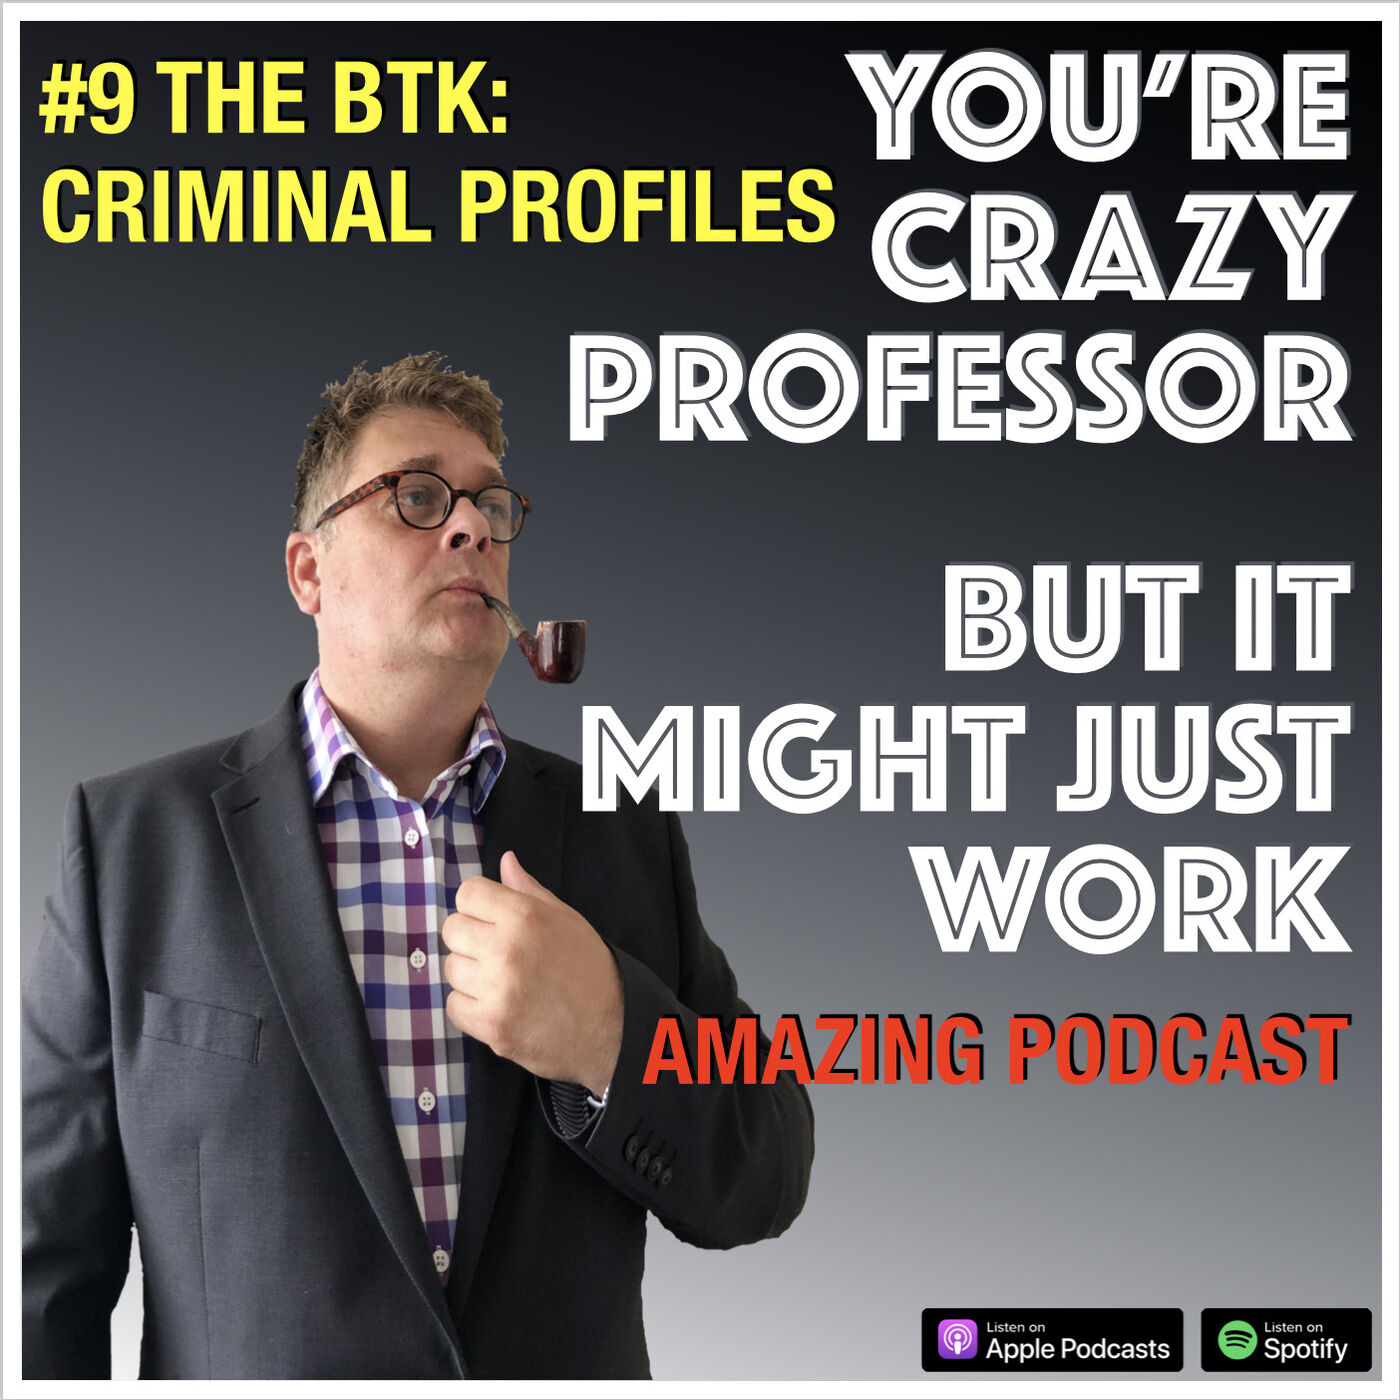 The BTK murders and Criminal Profiling